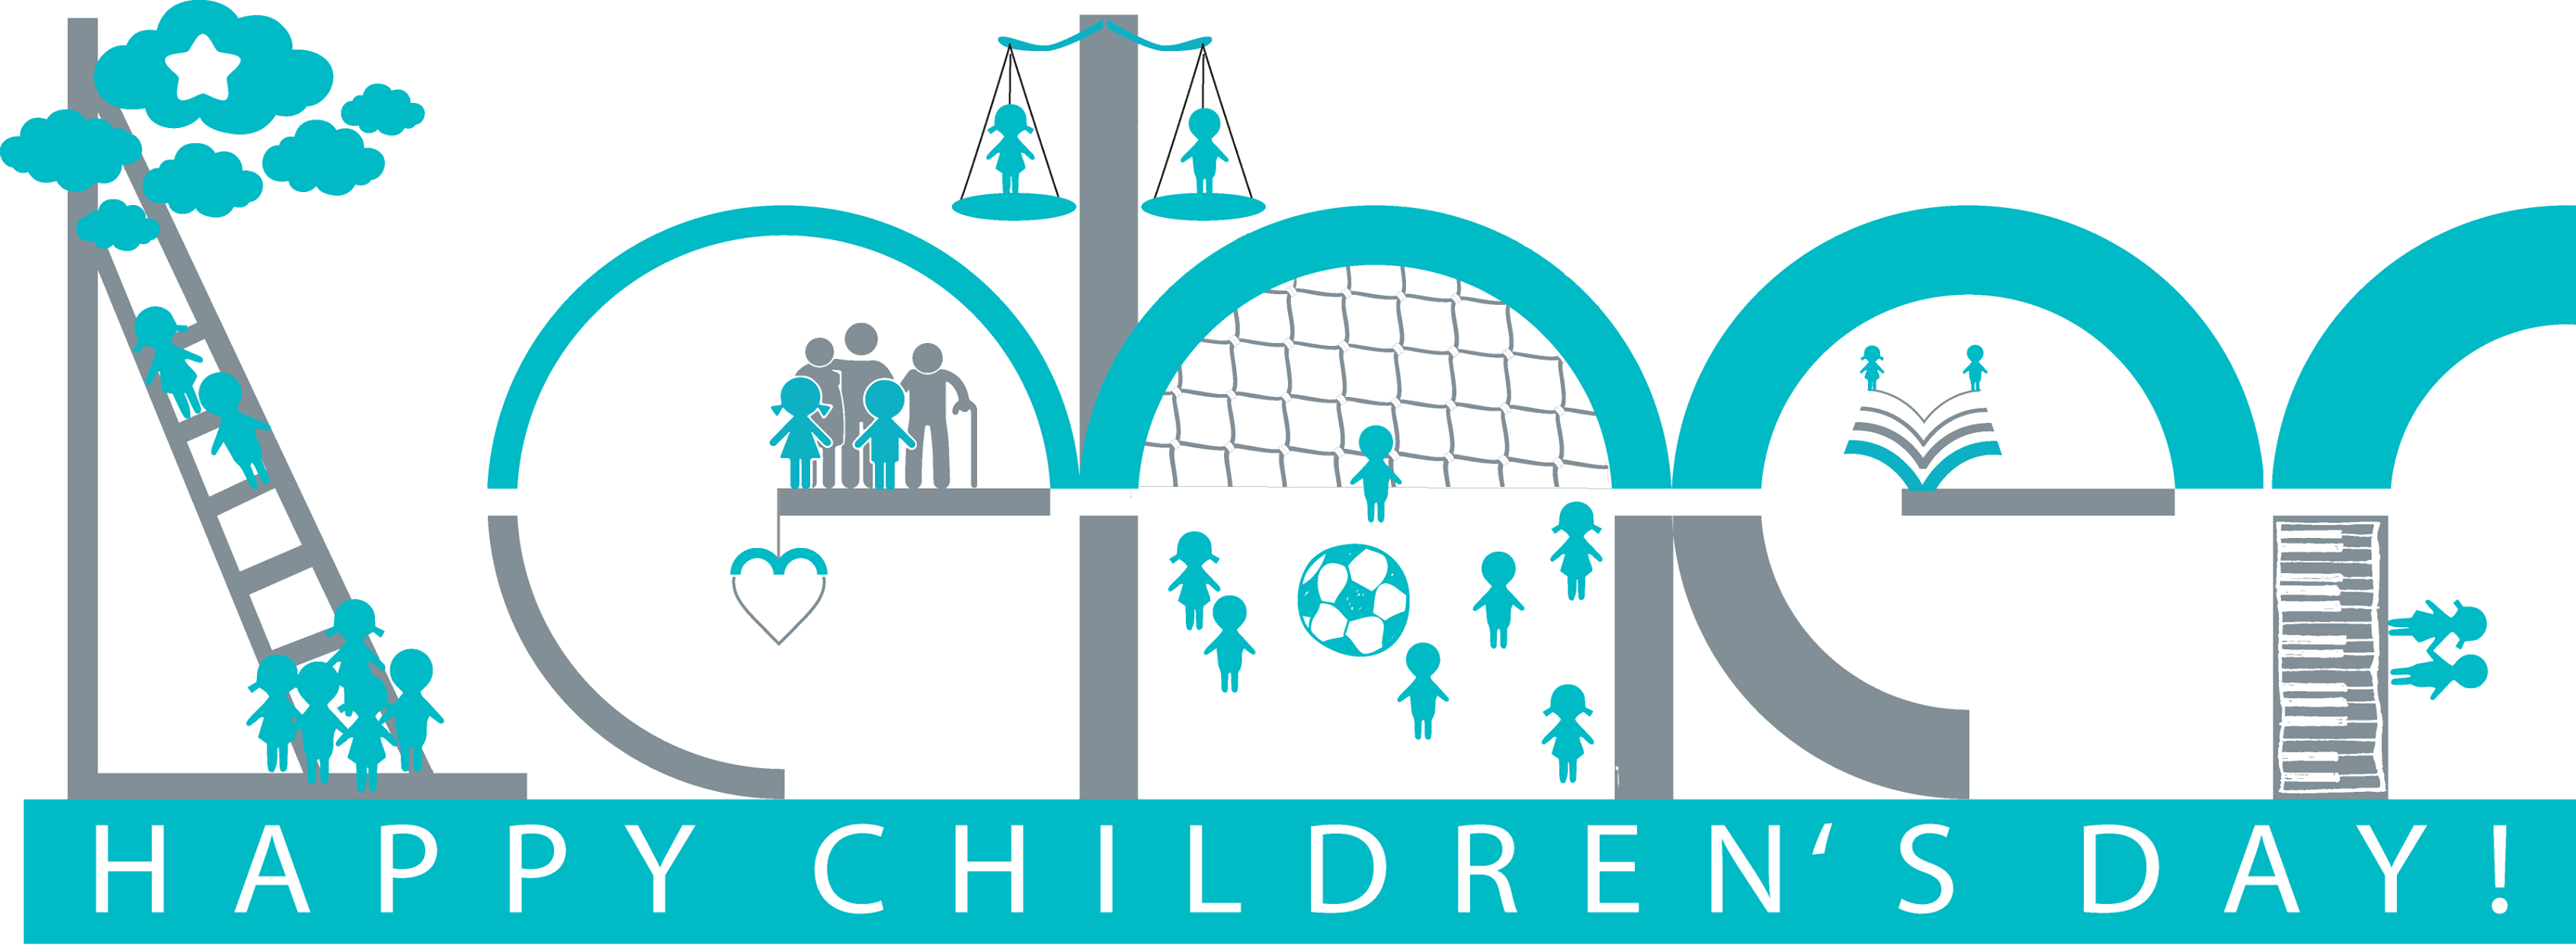 Happy Children's Day | Child Rights Organization | NGO in India